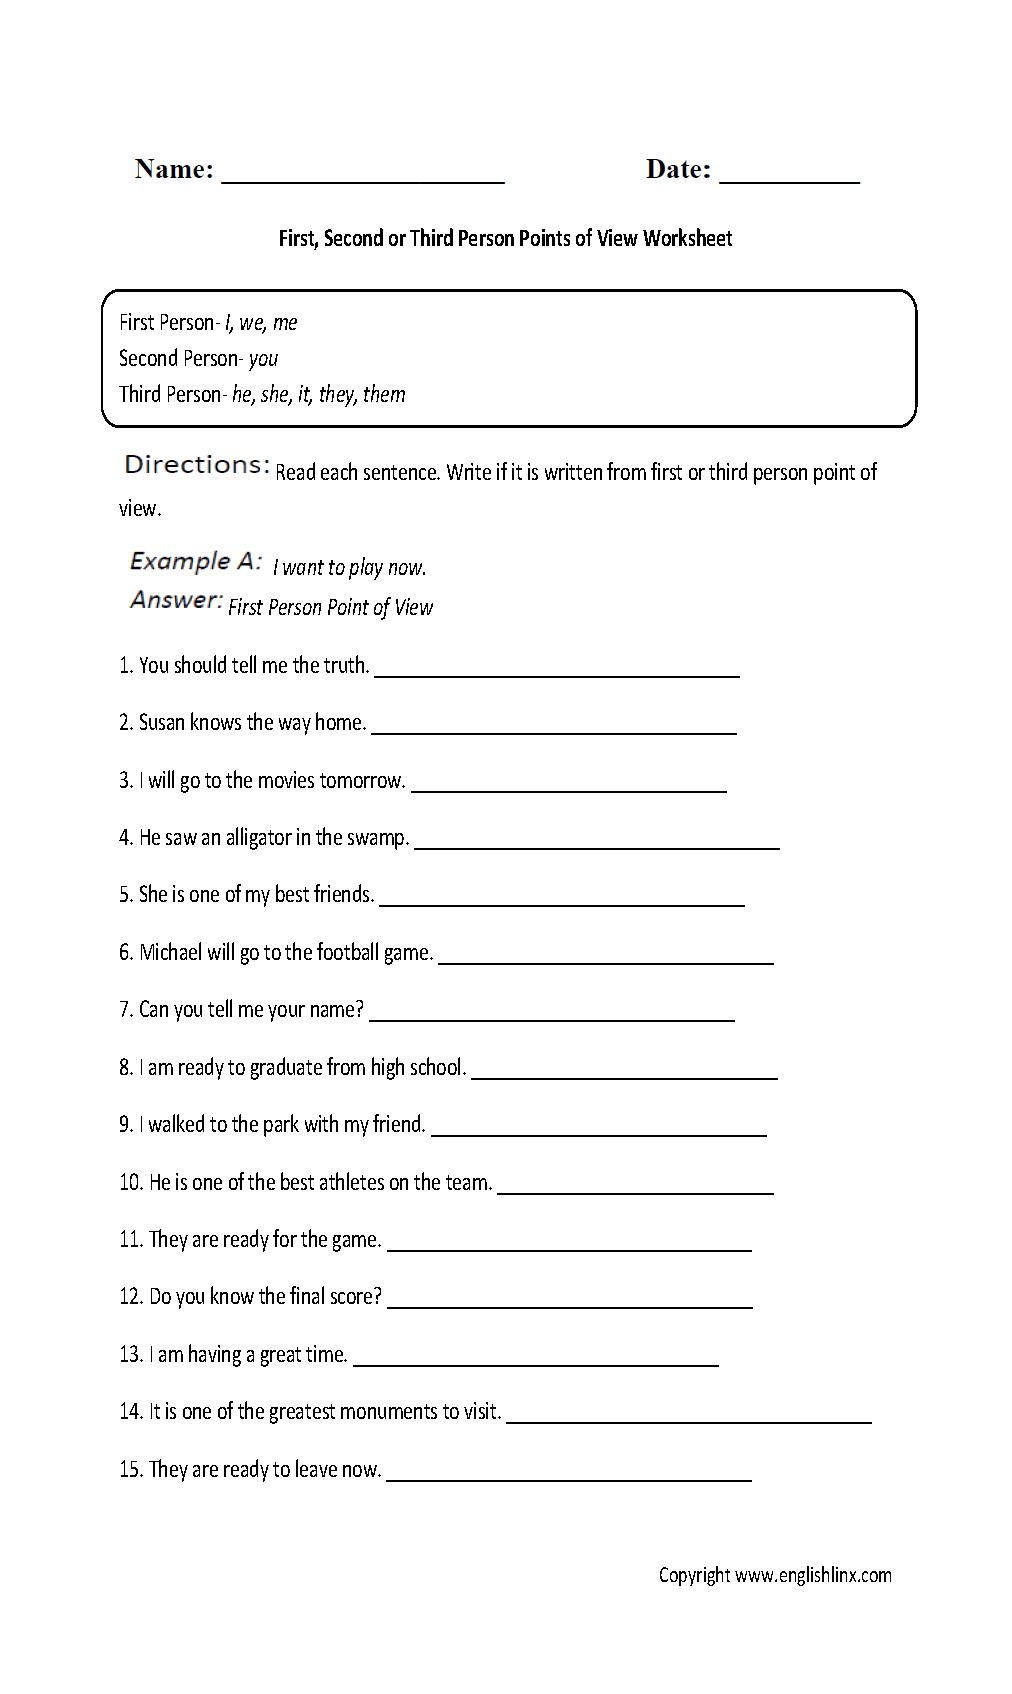 Weirdmailus  Pretty Englishlinxcom  Point Of View Worksheets With Hot Point Of View Worksheet With Cute Spot The Difference Printable Worksheets Also Identify Pronouns Worksheet In Addition Comprehension Worksheets Ks Free And Grade  Math Worksheets Multiplication As Well As Grammar For Th Grade Worksheets Additionally Free Math Worksheets For Kindergarten Counting From Englishlinxcom With Weirdmailus  Hot Englishlinxcom  Point Of View Worksheets With Cute Point Of View Worksheet And Pretty Spot The Difference Printable Worksheets Also Identify Pronouns Worksheet In Addition Comprehension Worksheets Ks Free From Englishlinxcom